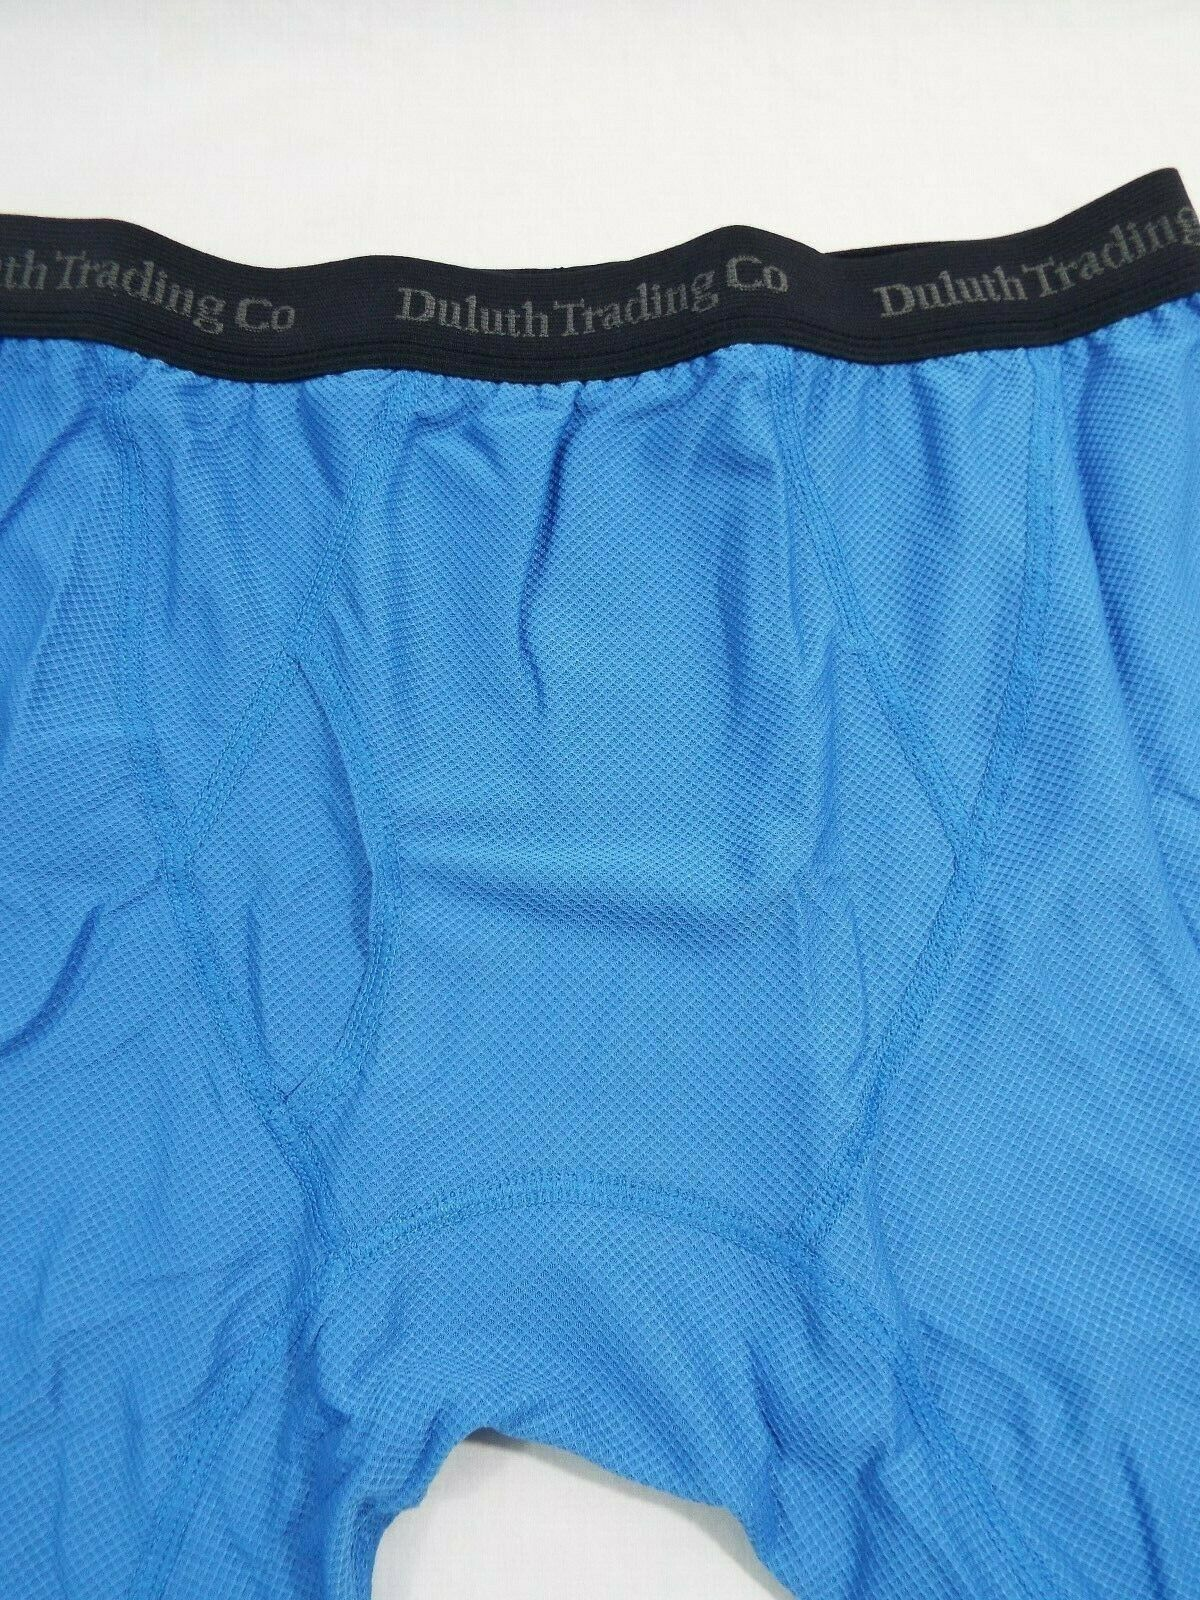 Duluth Trading Co 1 Pair X Long Buck Naked Boxer Brief